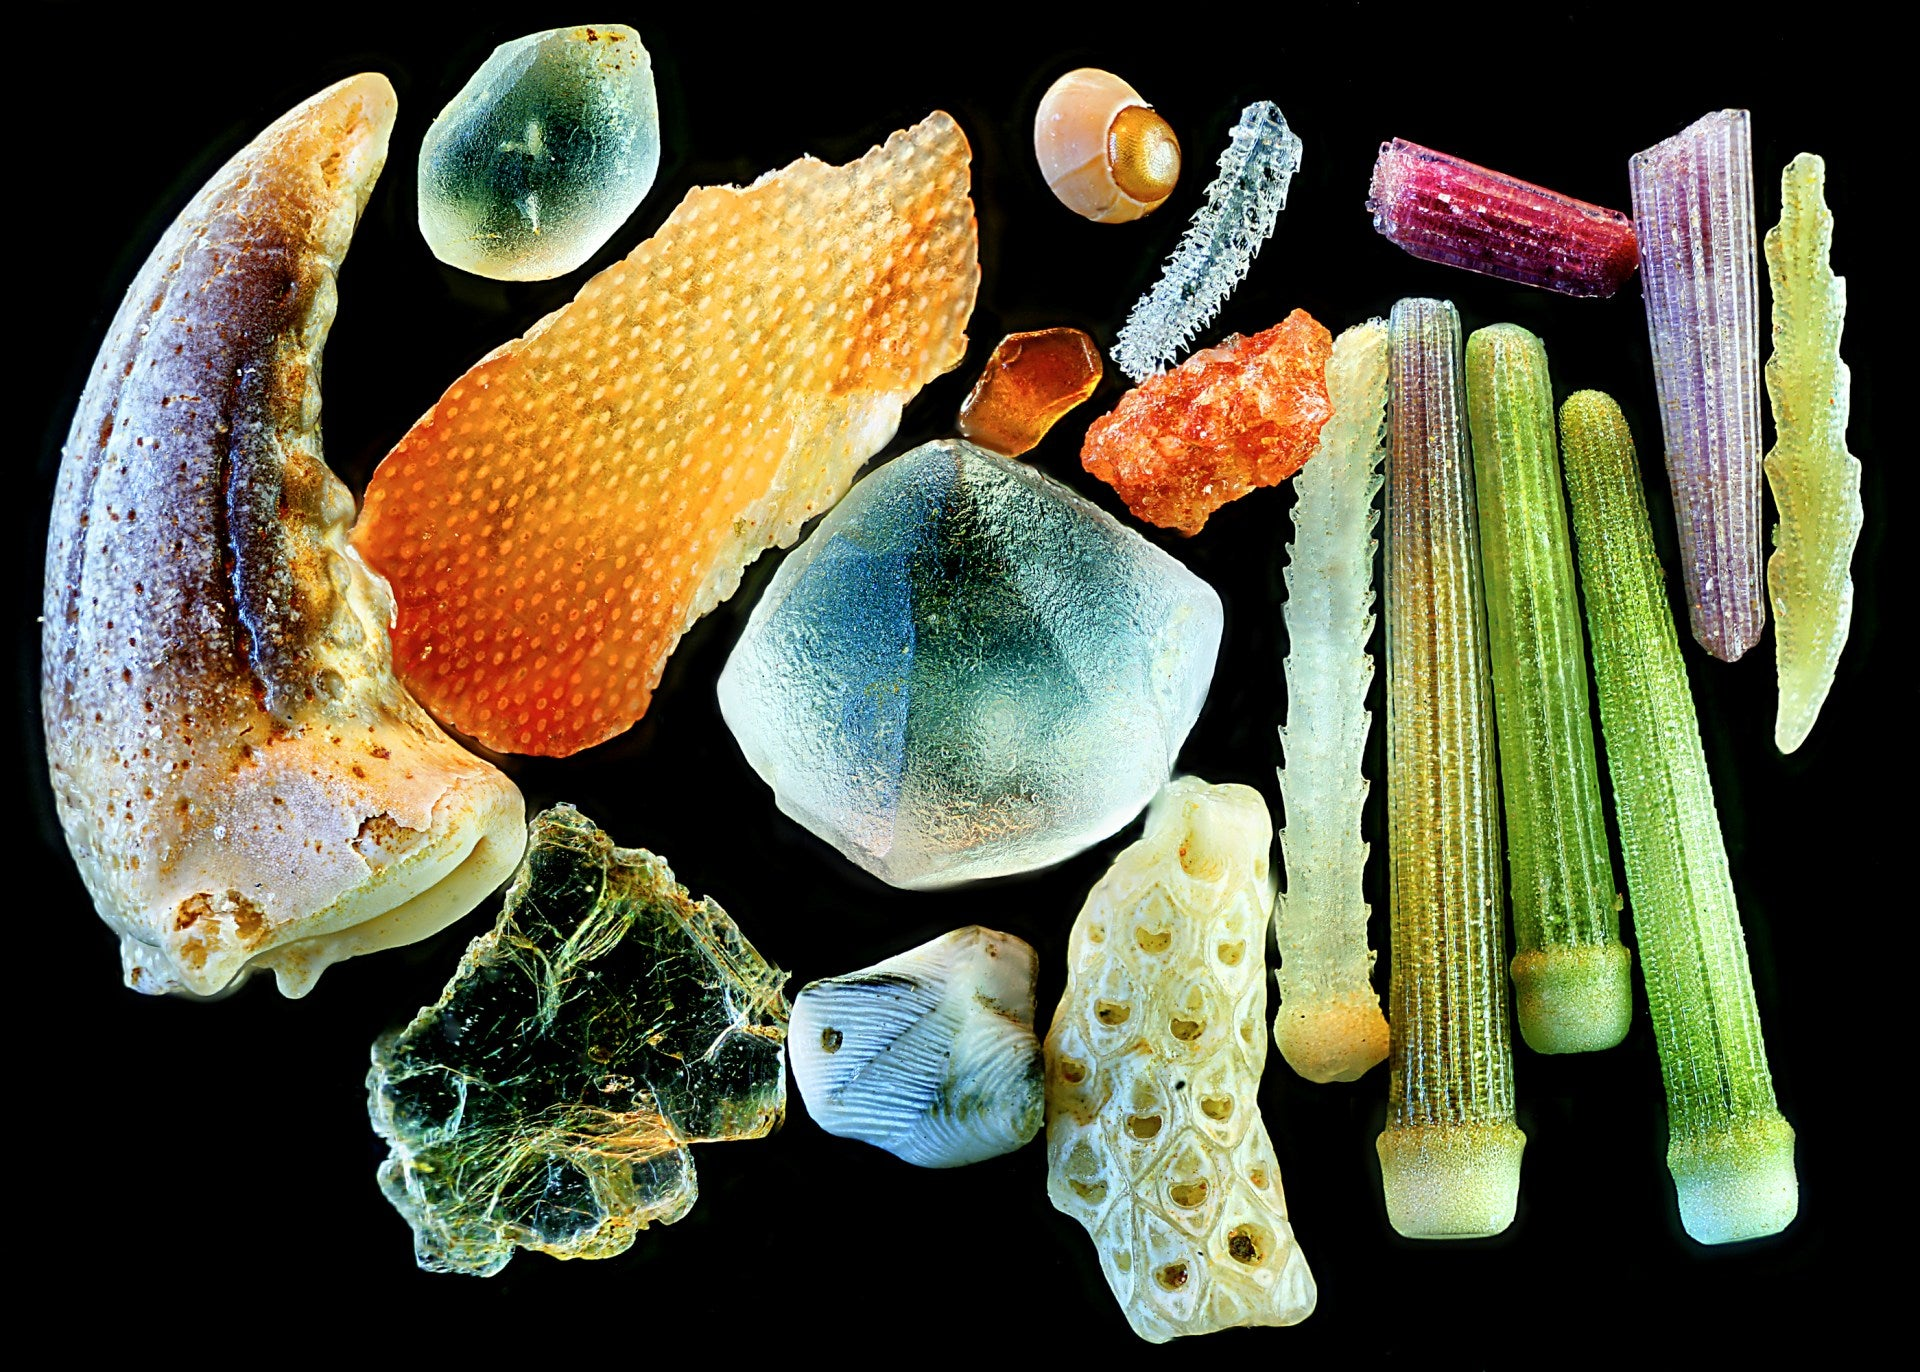 Sand under a microscope - Jackie Gale Artist